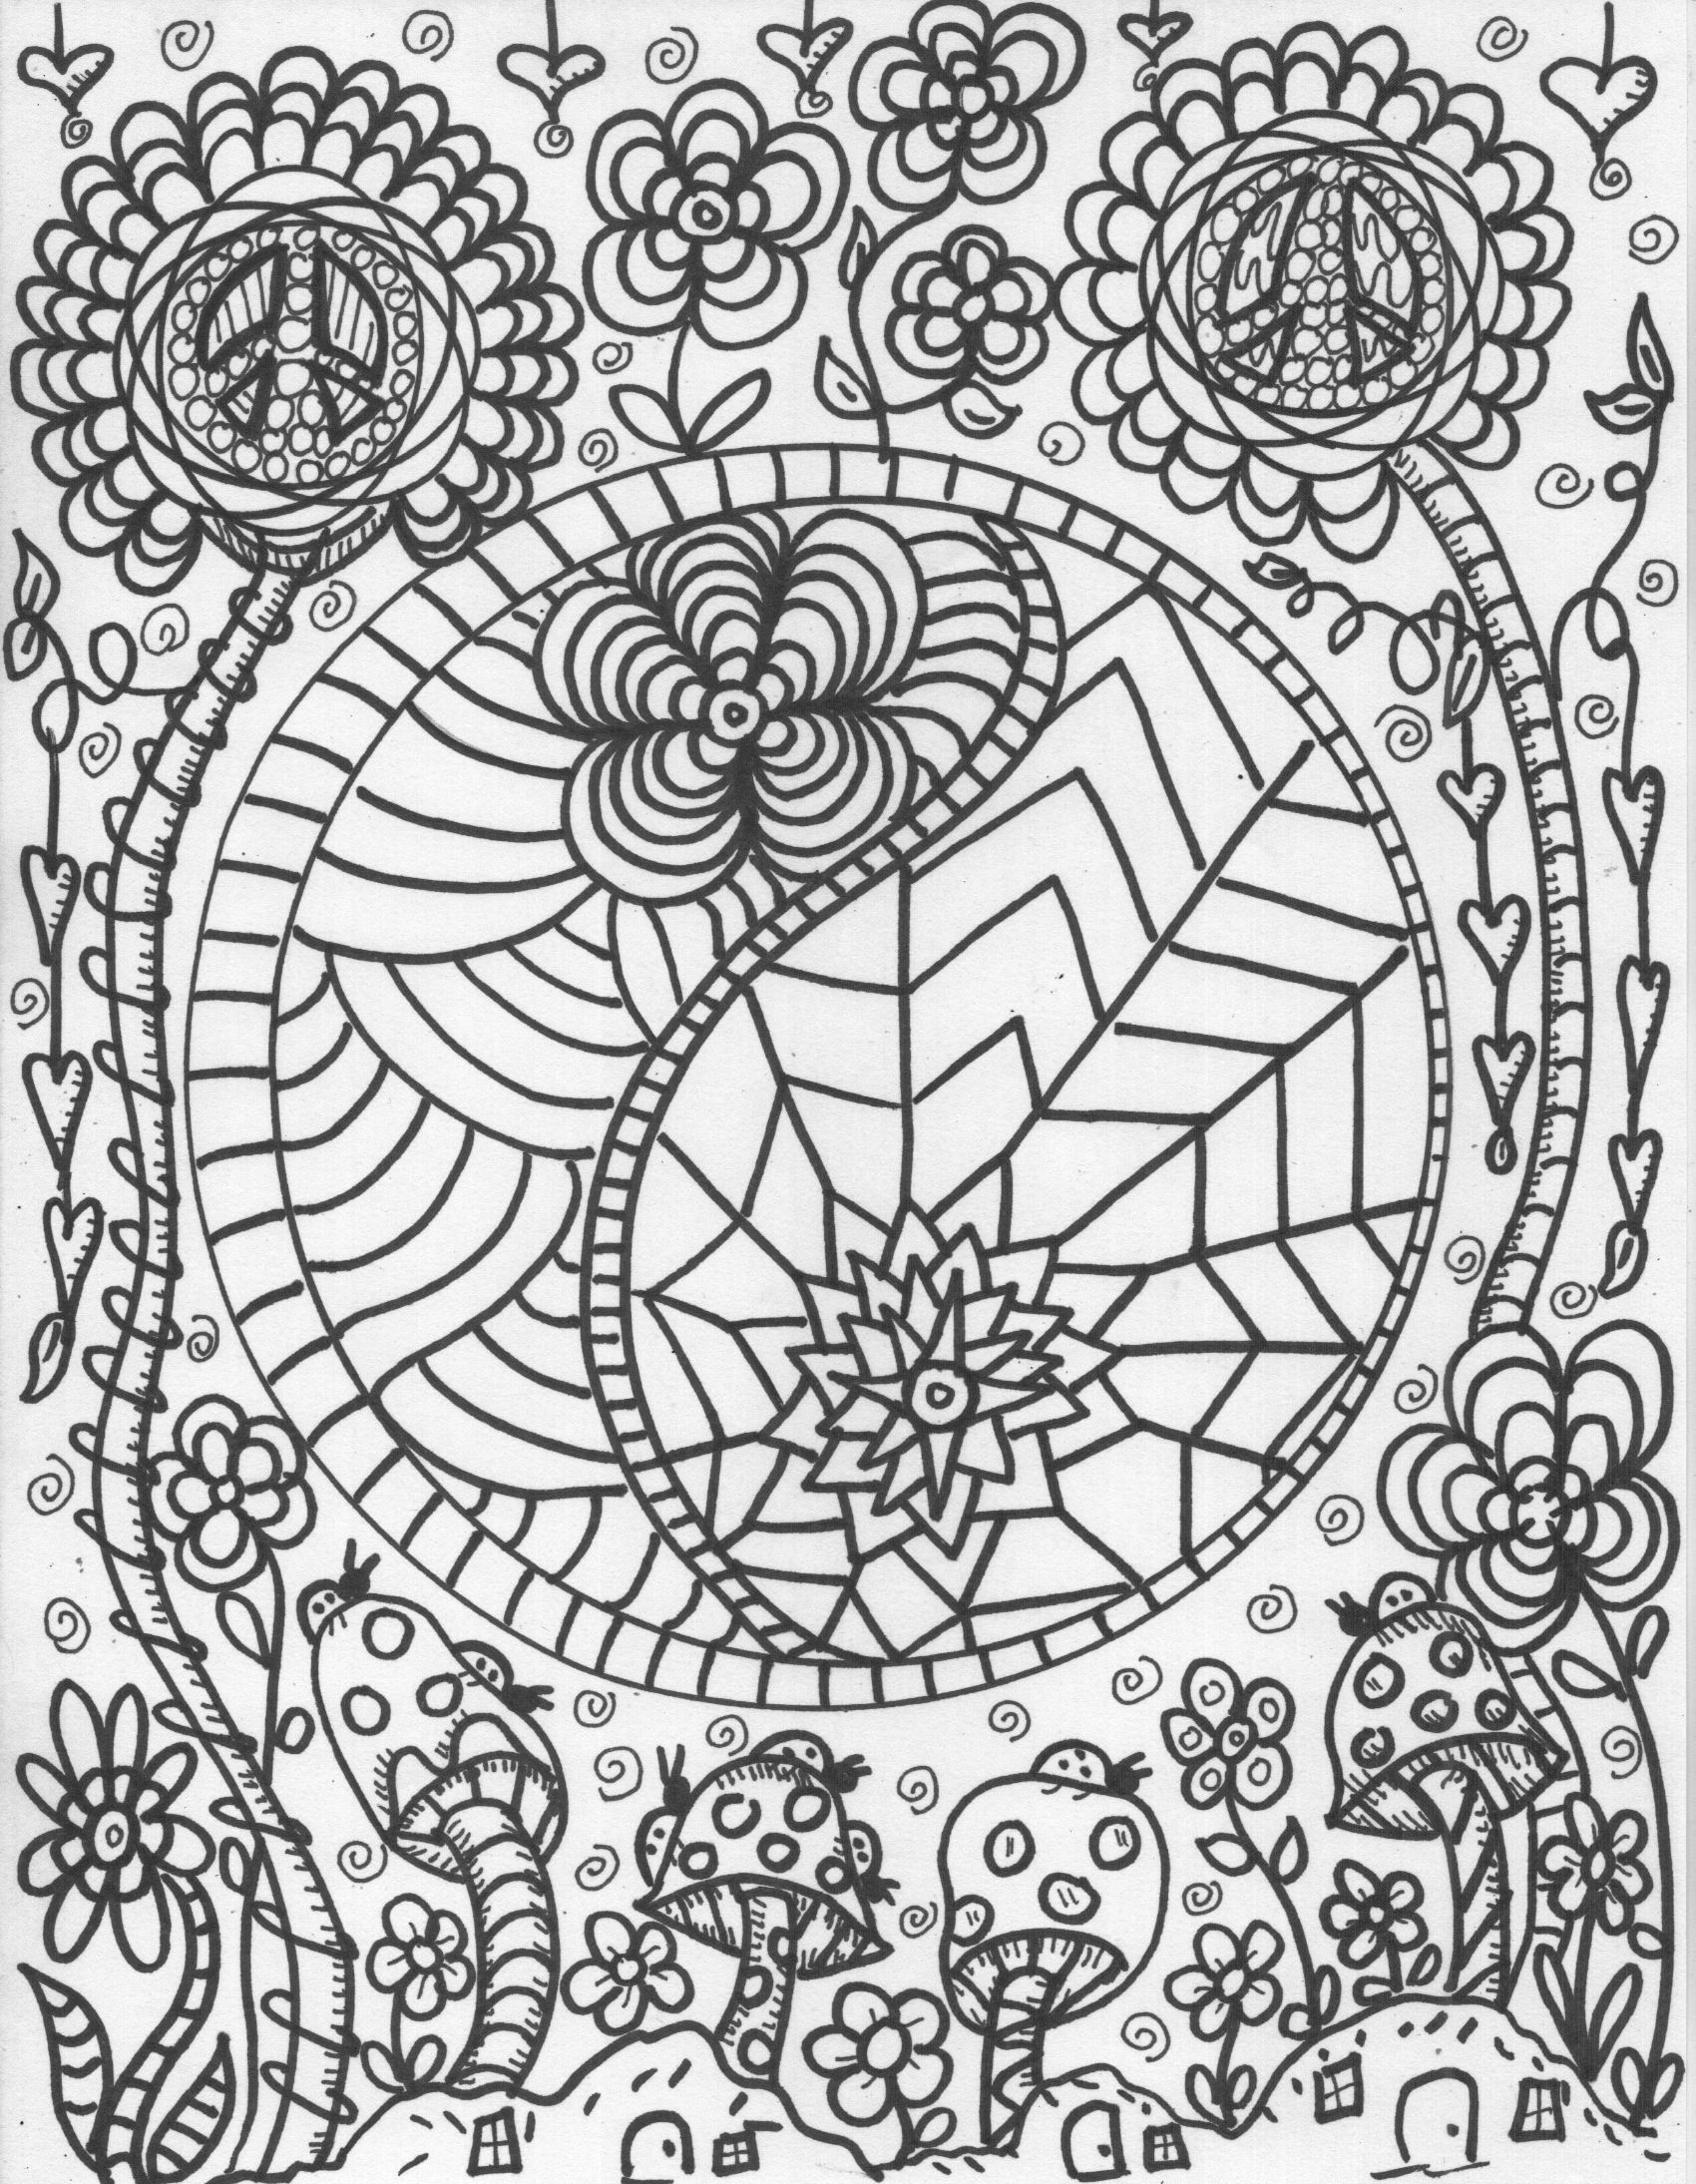 Coloring Book Pages…design Your Own Coloring Book Adult Coloring